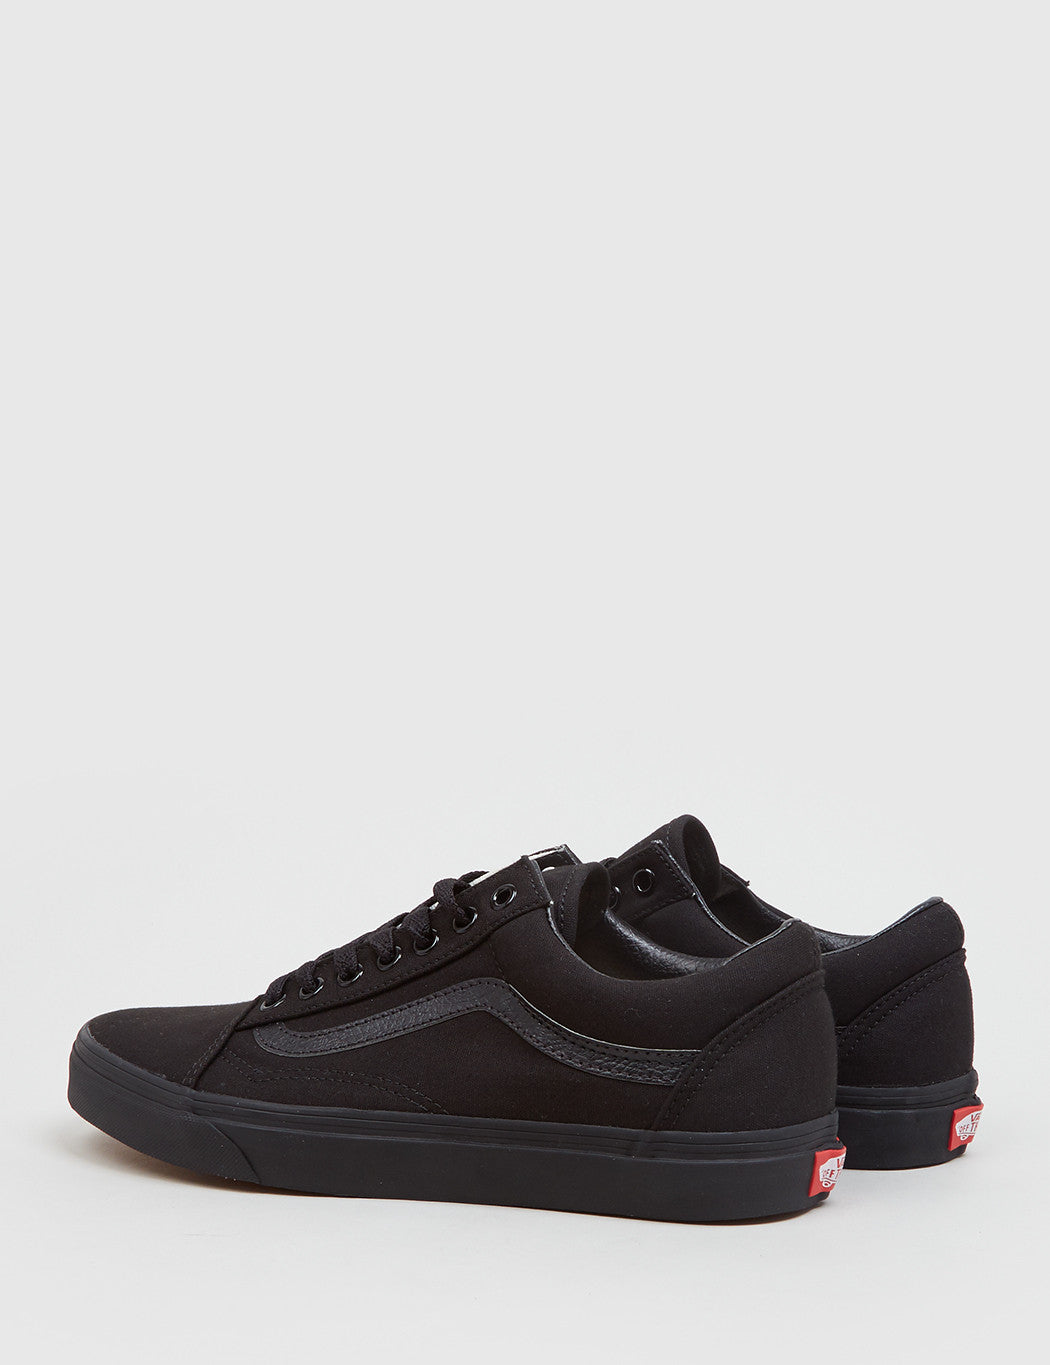 Vans Old Skool (Canvas) - Black/Black